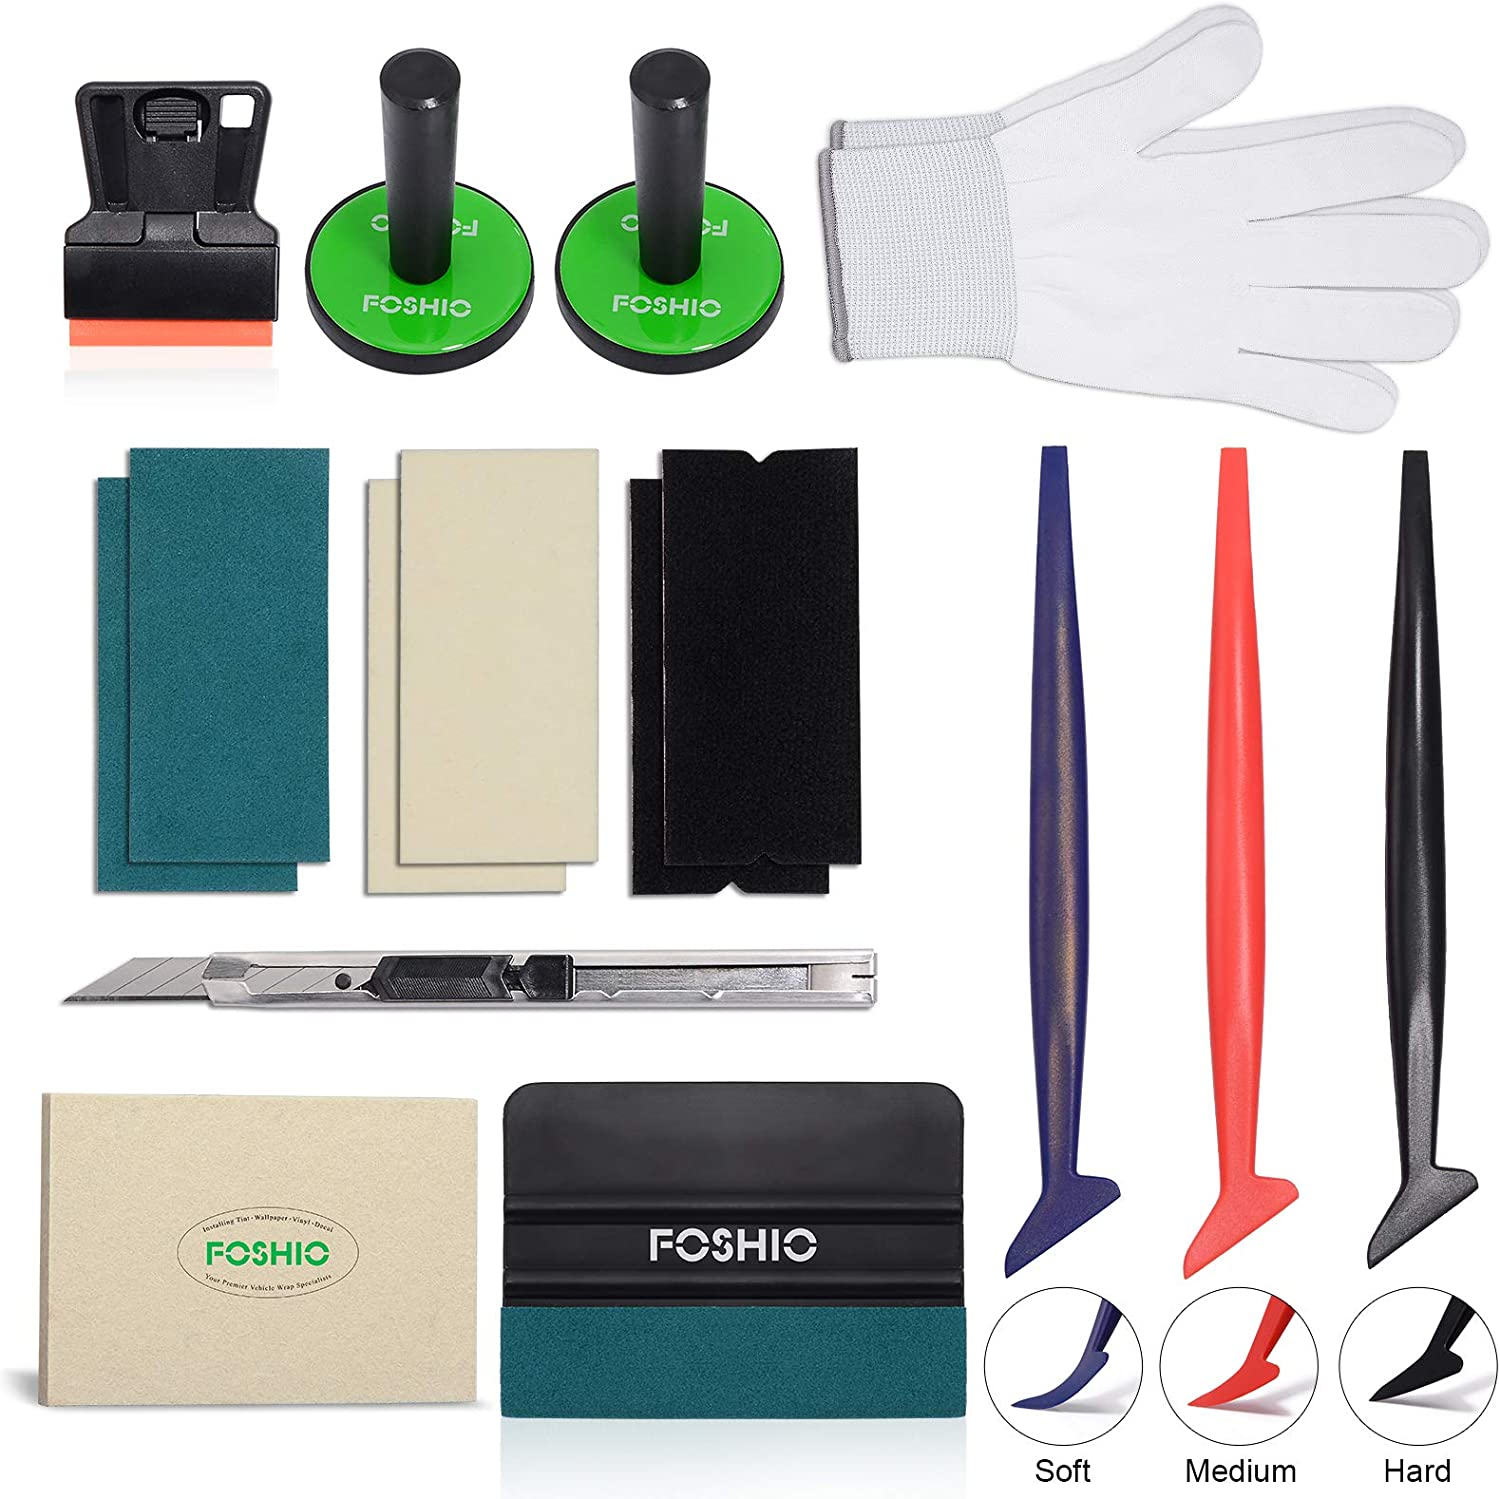 FOSHIO Vehicle Vinyl Wrap Window Tinting Film Tool Kit with Mini Plastic Scraper, Wool Squeegee, Vinyl Cutter, Magnet Holder, Hand Gloves,3 Kinds of Squeegee Felts & Flexible Micro Contoured Squeegee